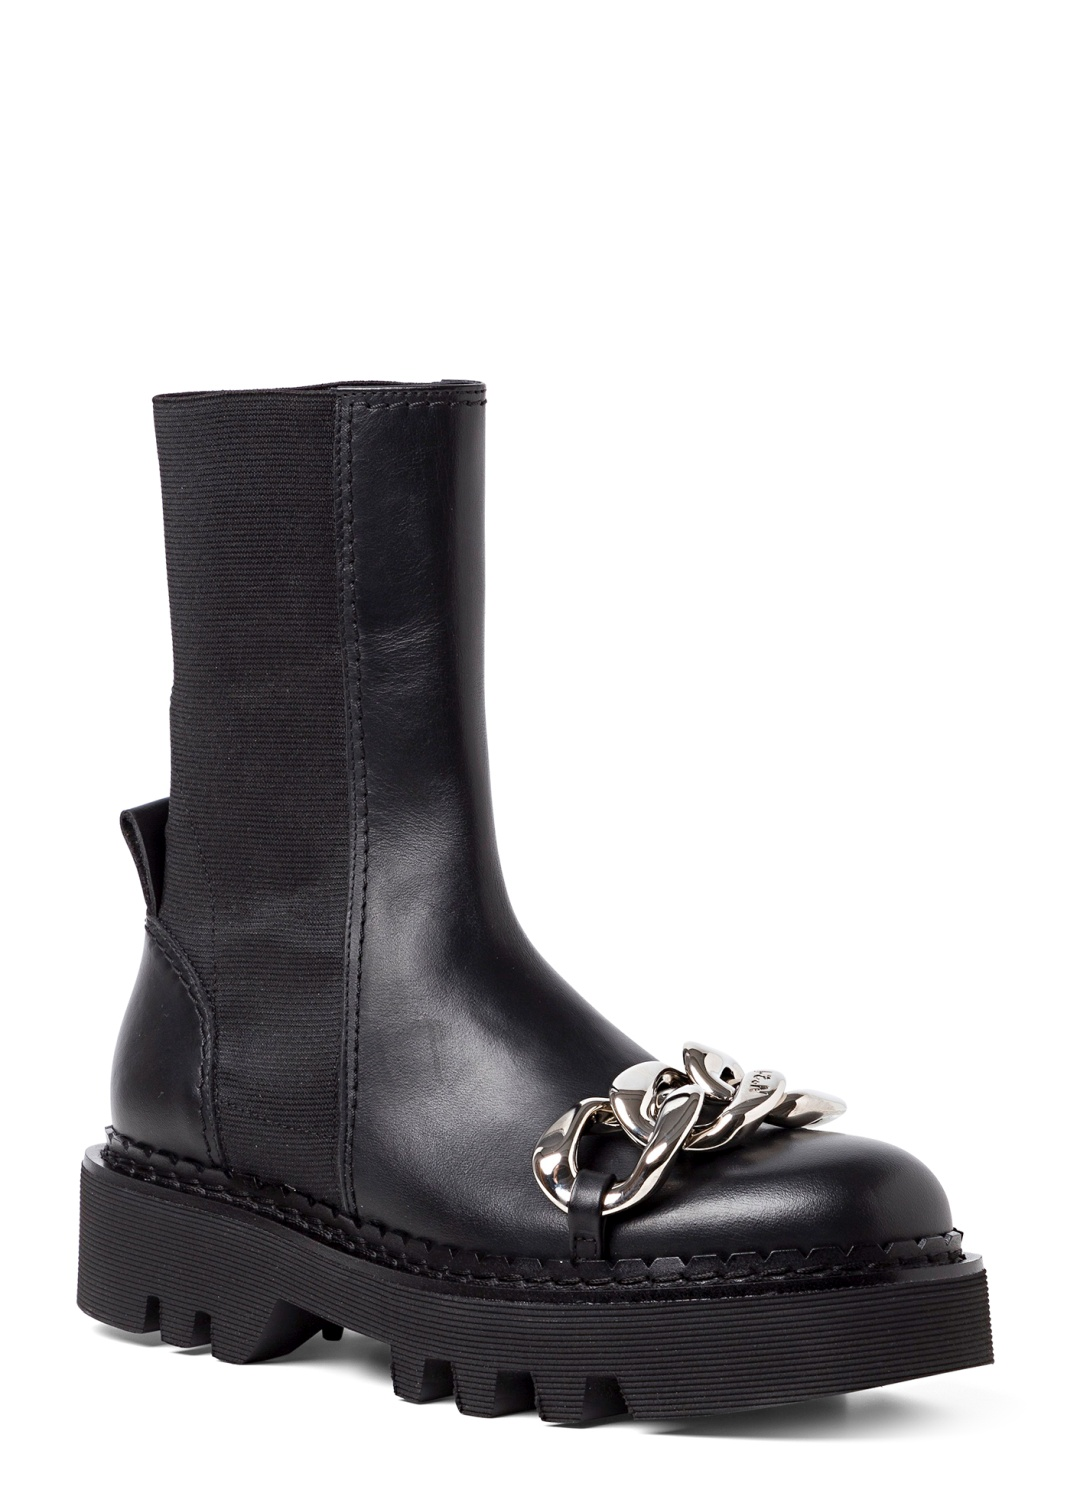 Chelsea Boot Chain image number 1